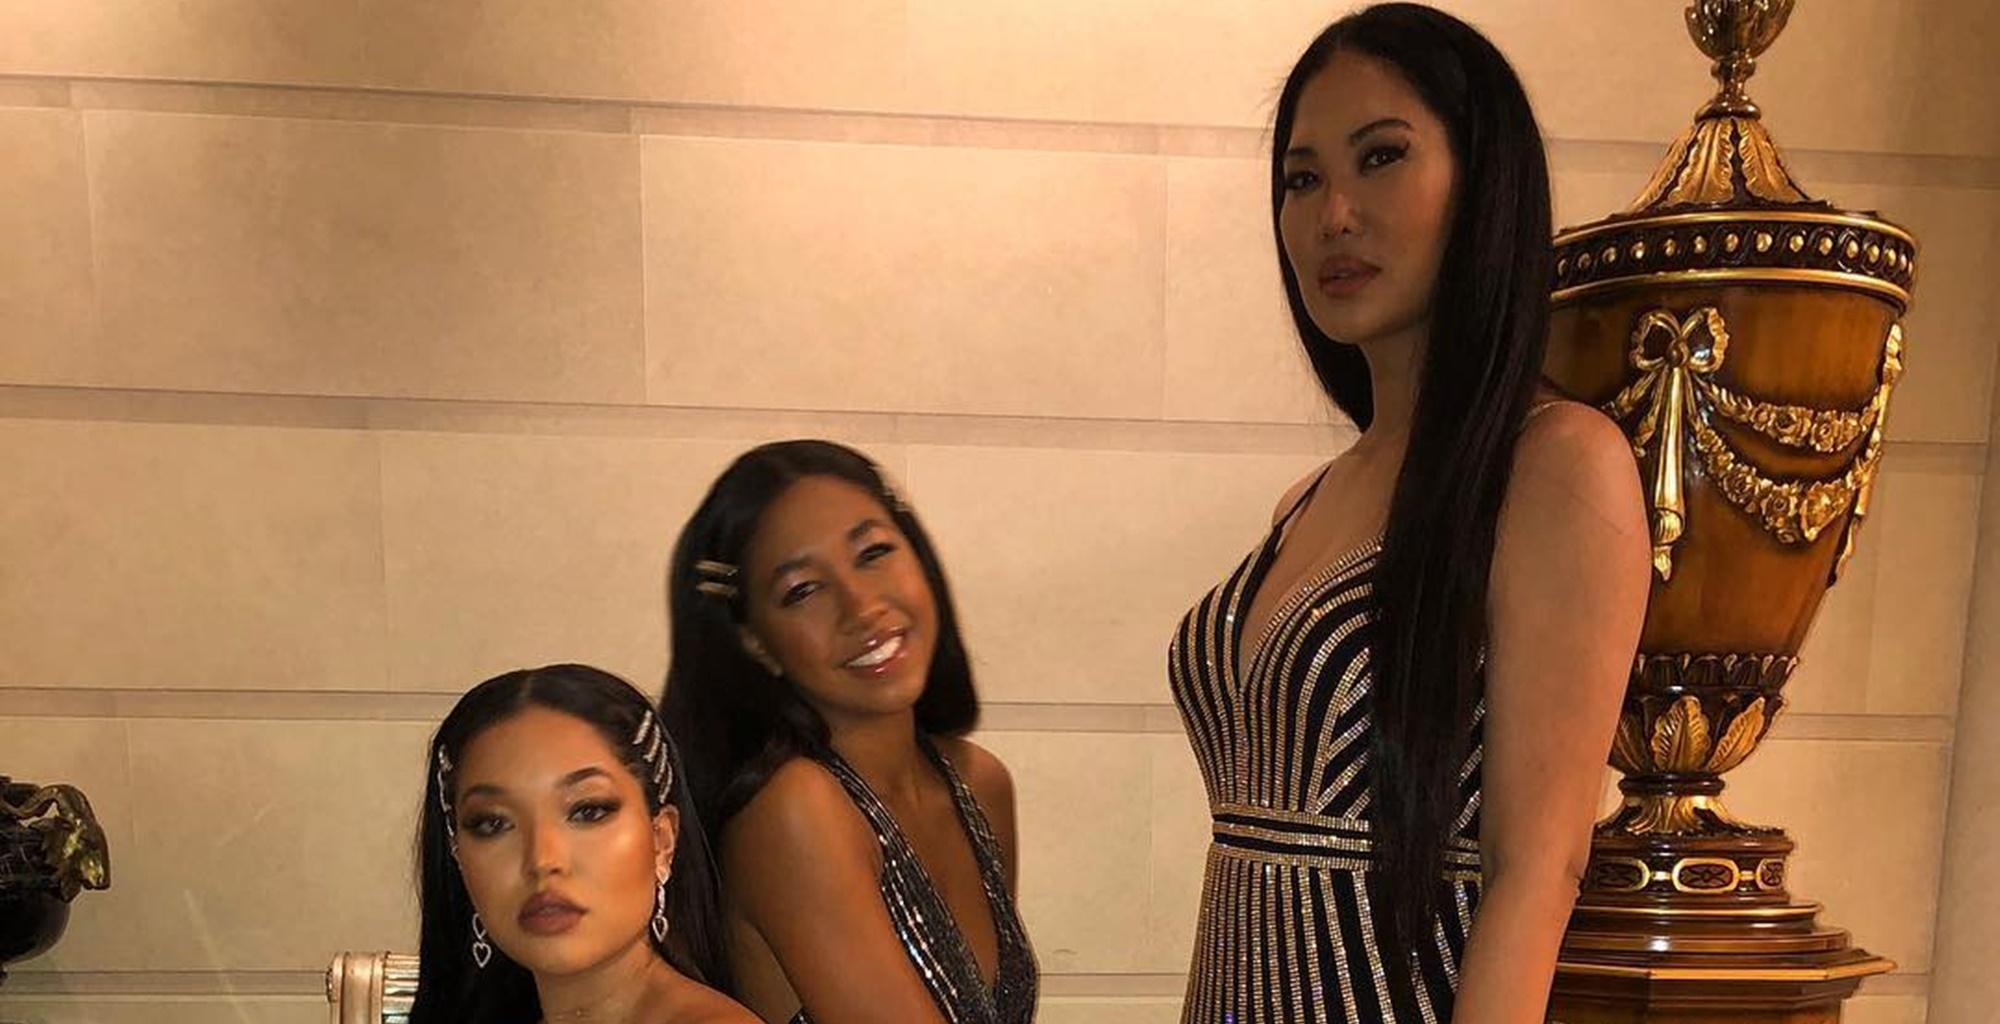 Kimora Lee Simmons' Brilliant Daughter Aoki Paints Dark Picture Of Some Of Her Classmates In Emotional Video